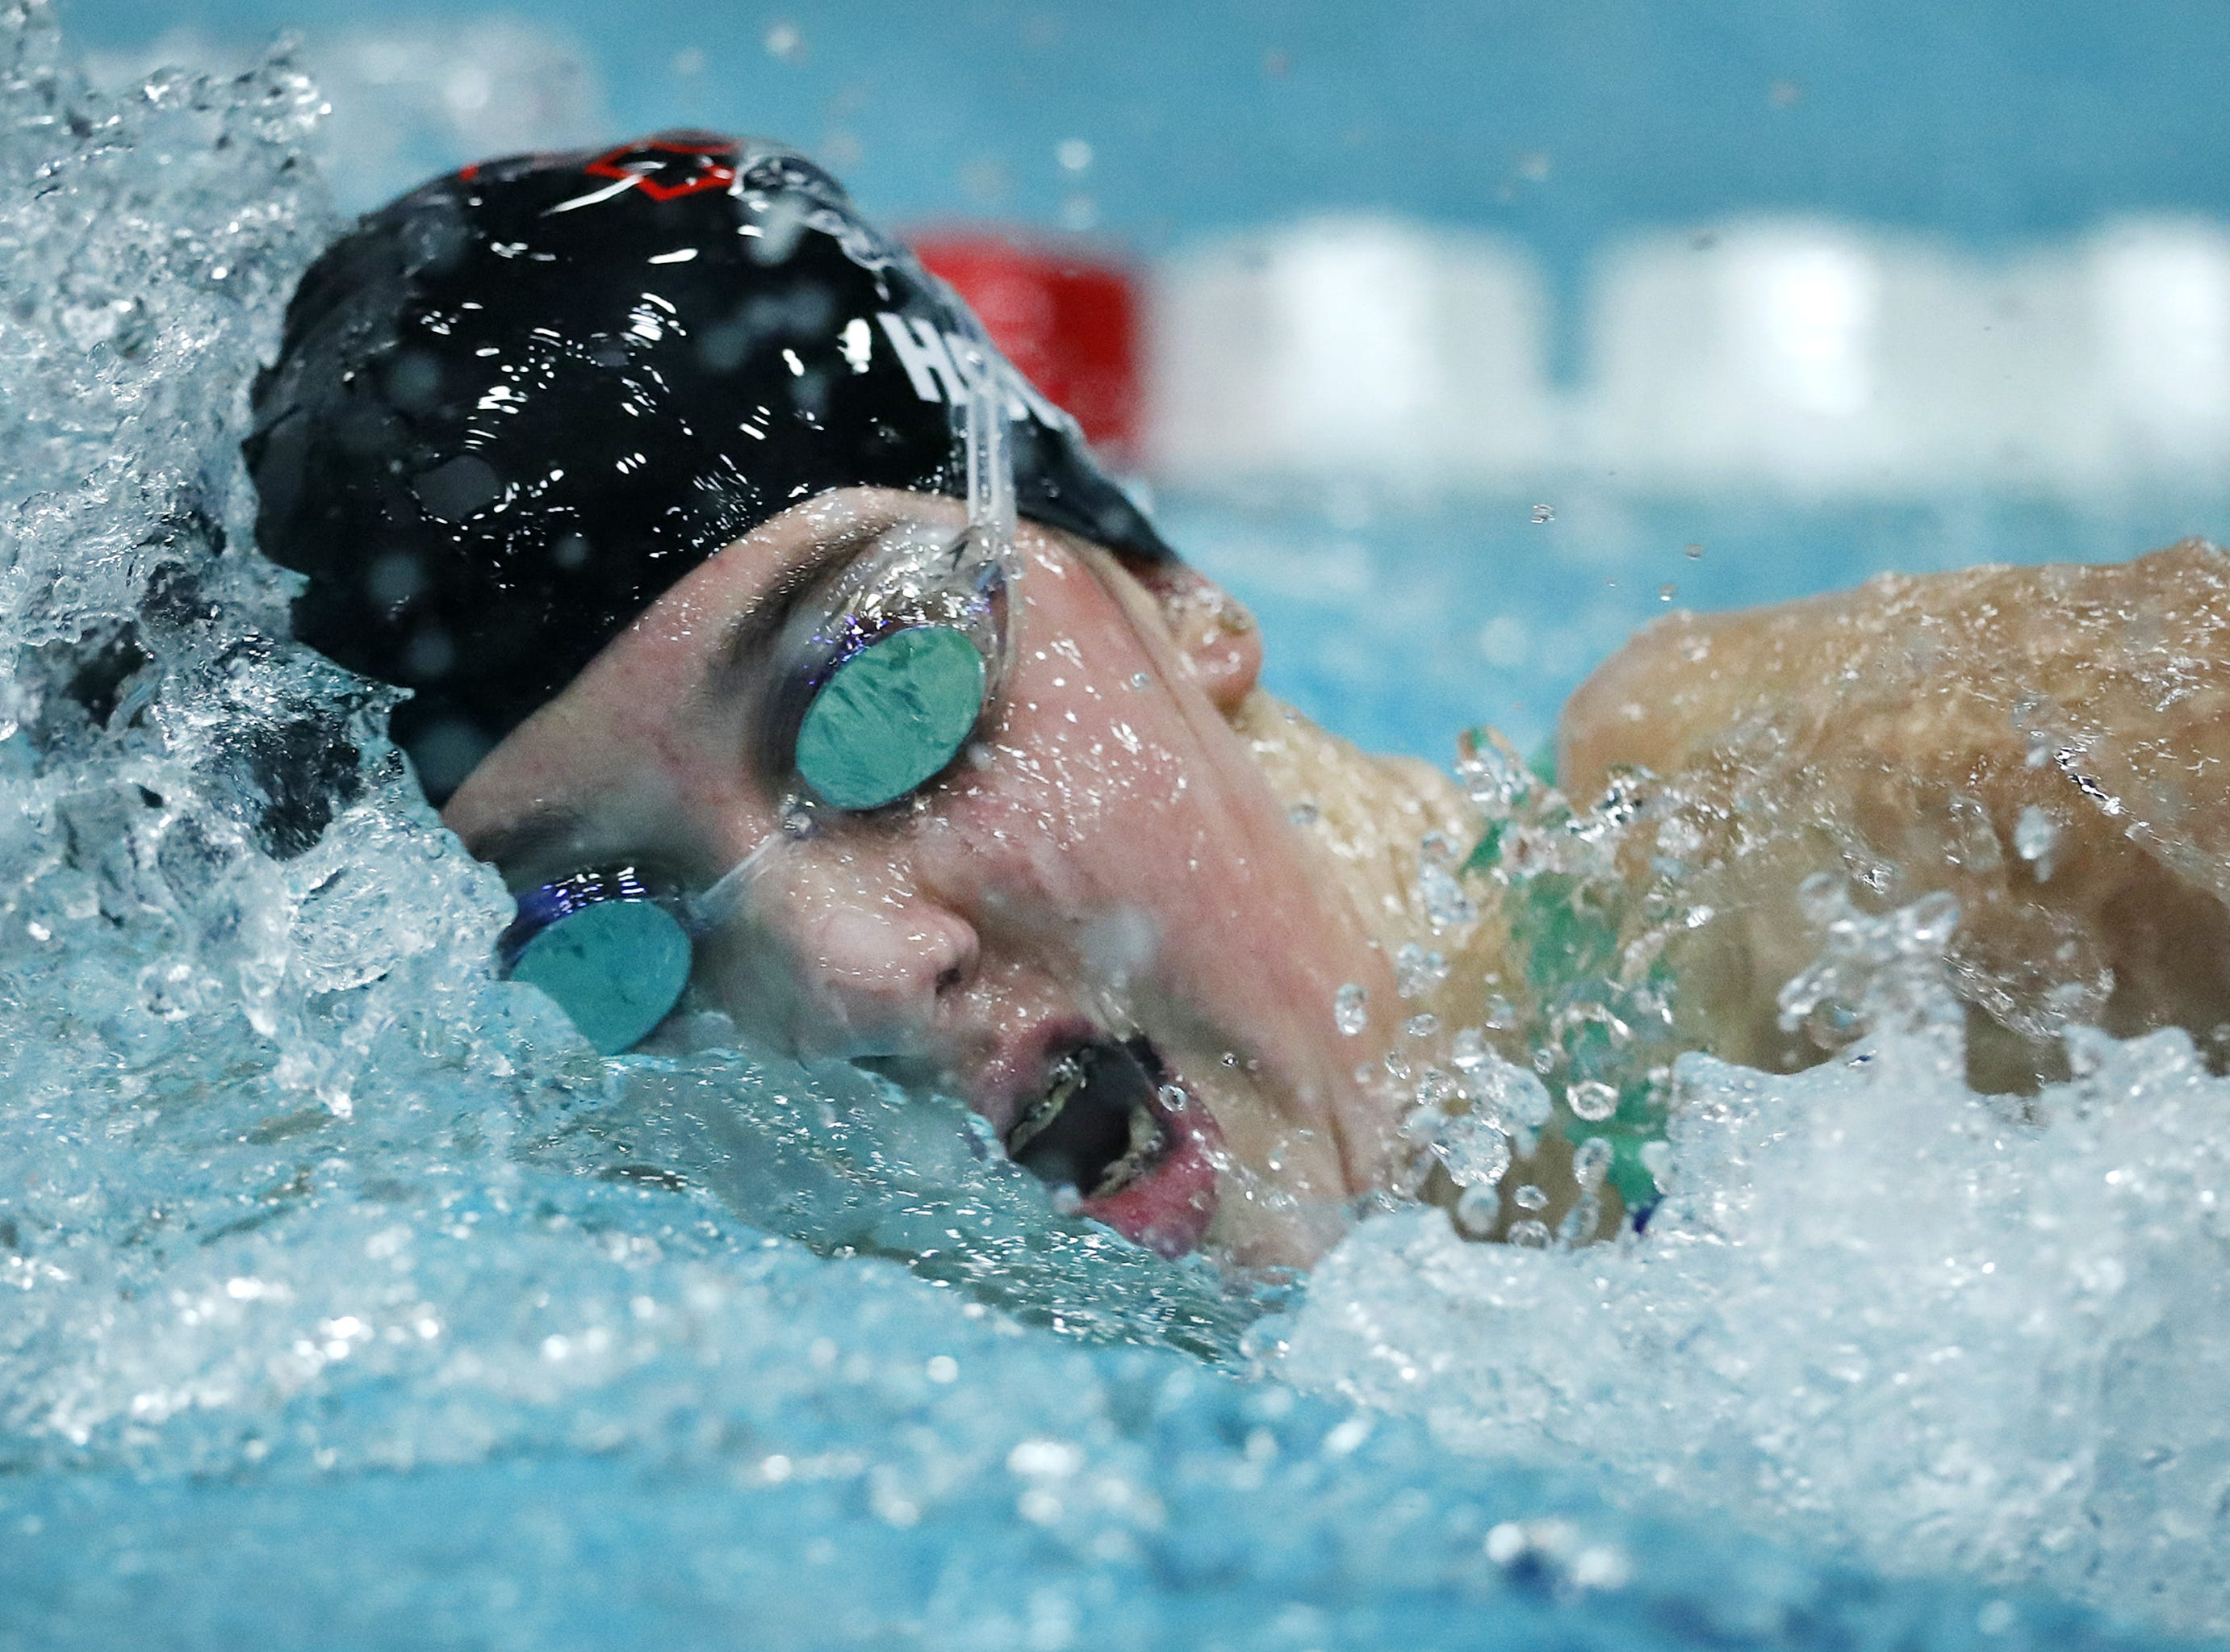 Stevens PointÕs Sydney Hoff races in the 200 yard freestyle during the WIAA Division 1 State Swimming and Diving meet Saturday, Nov. 10, 2018, at the UW Natatorium in Madison, Wis. Danny Damiani/USA TODAY NETWORK-Wisconsin